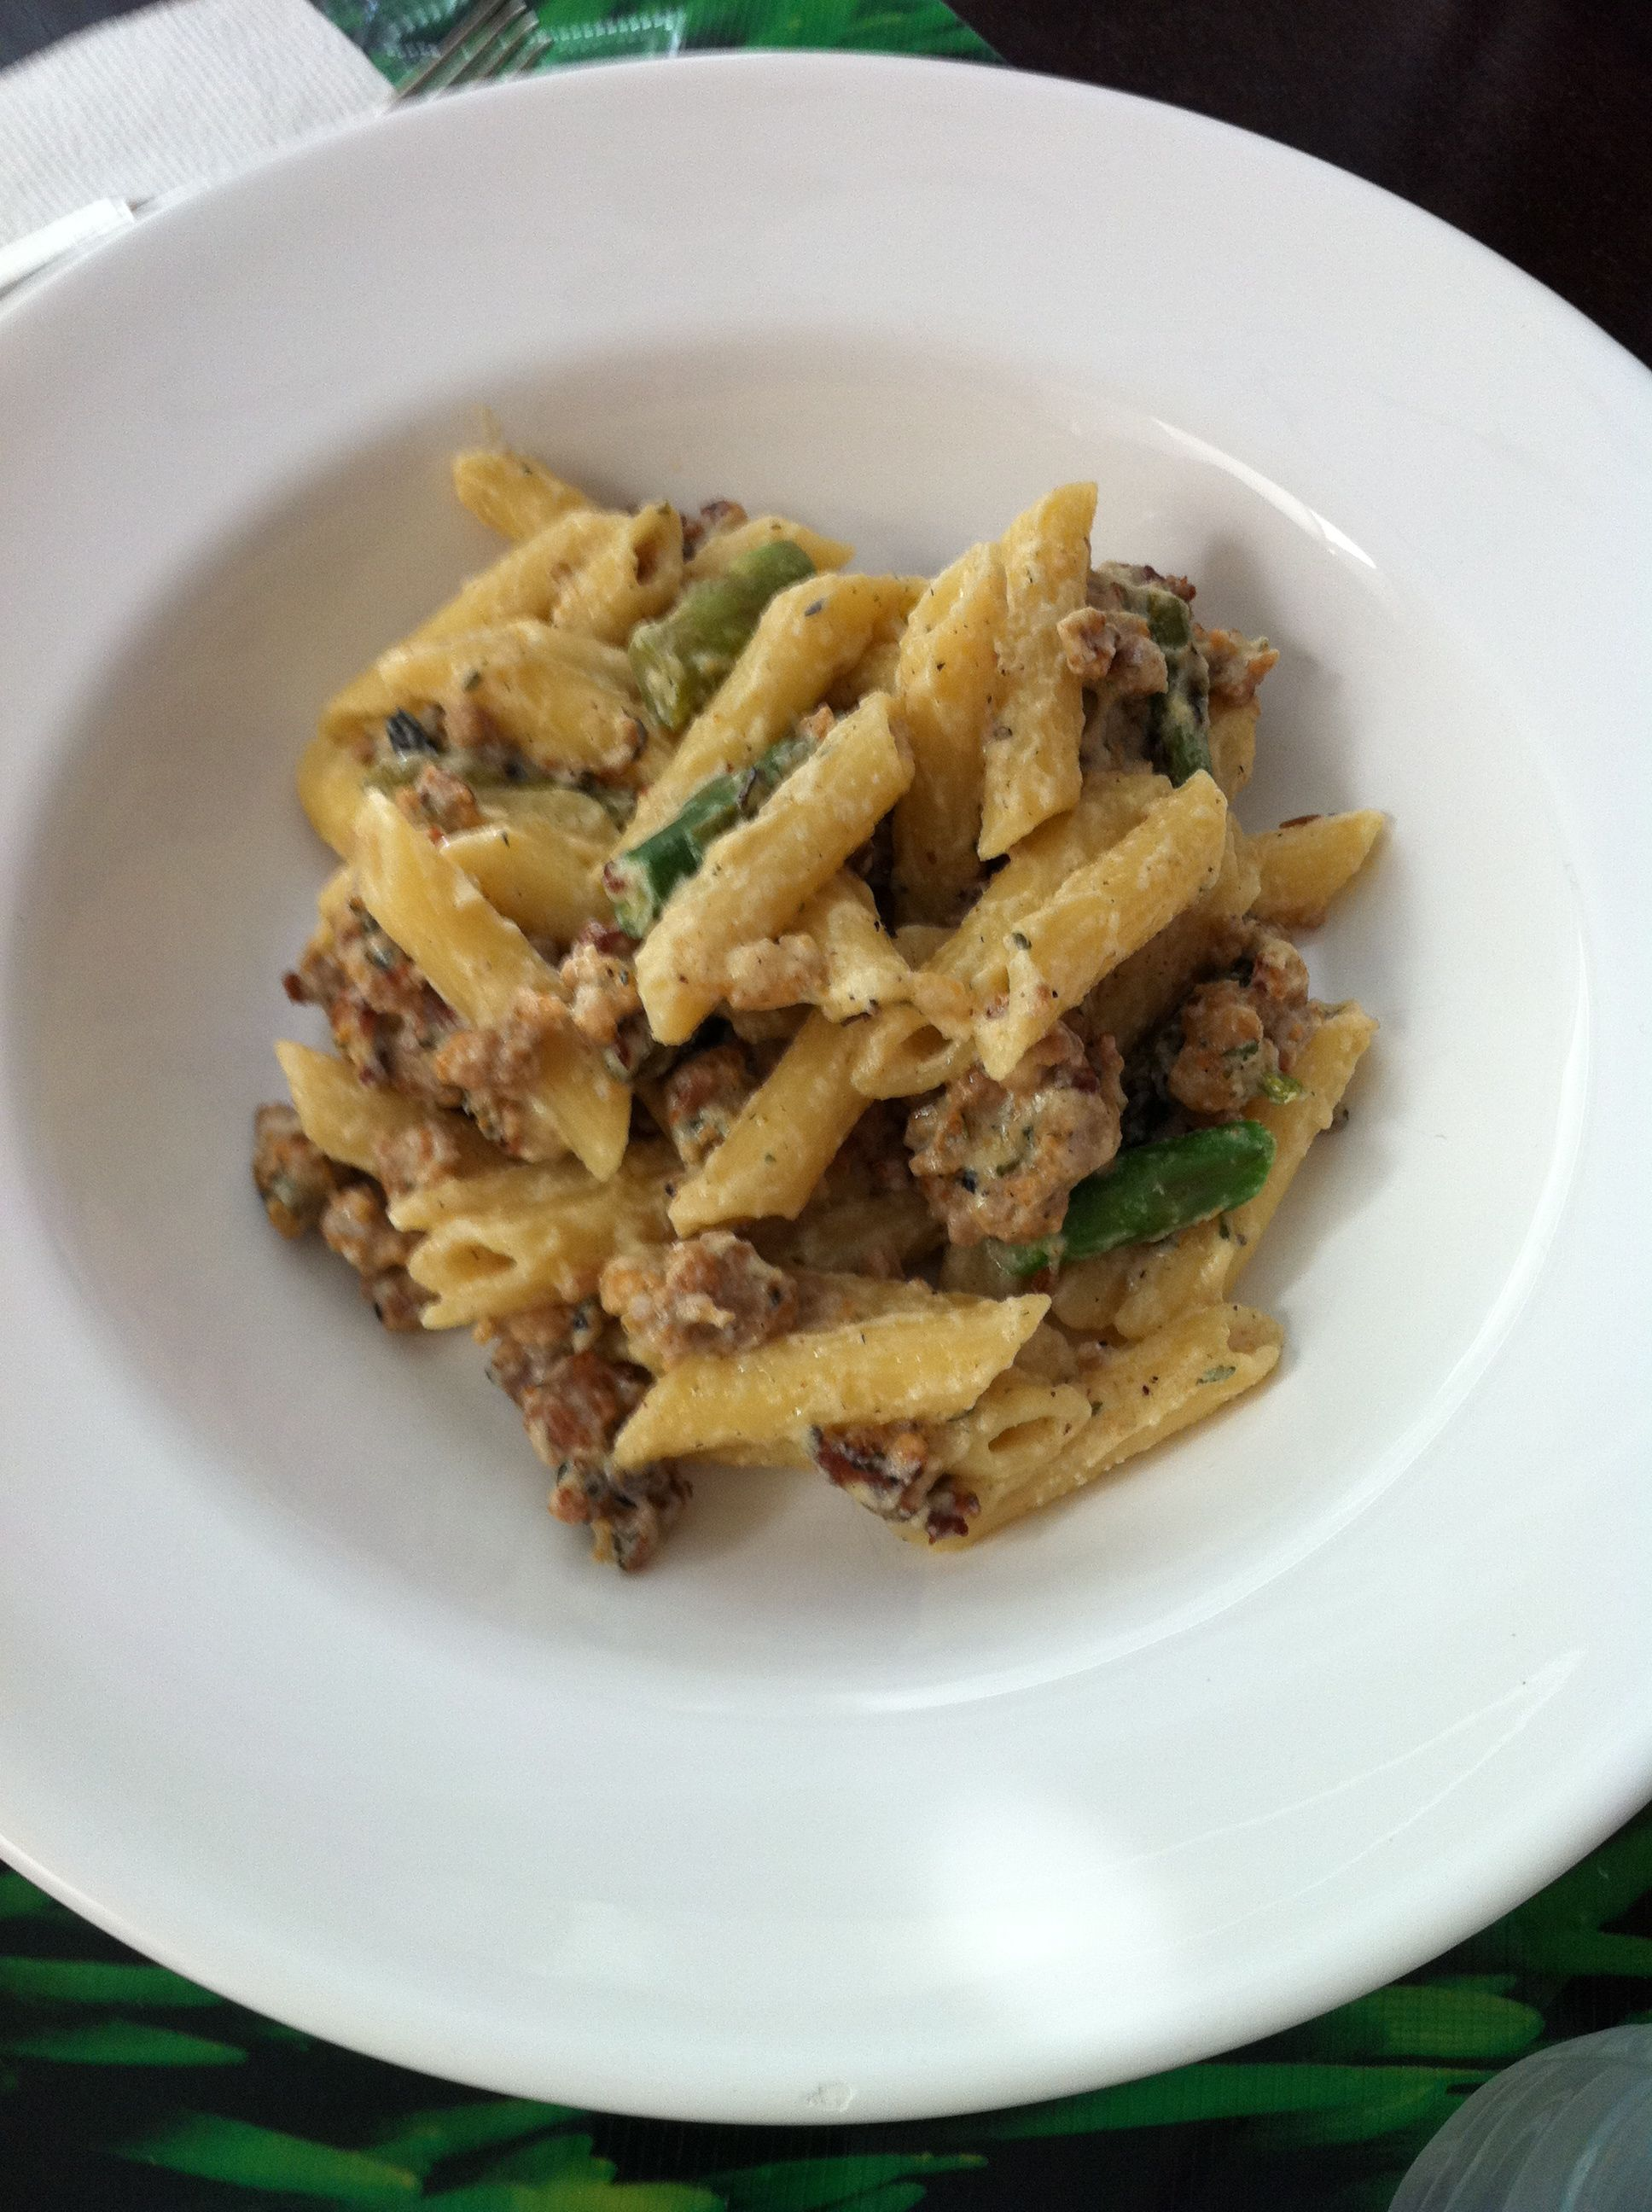 ... - penne pasta with ricotta cheese, roasted asparagus, and sausage